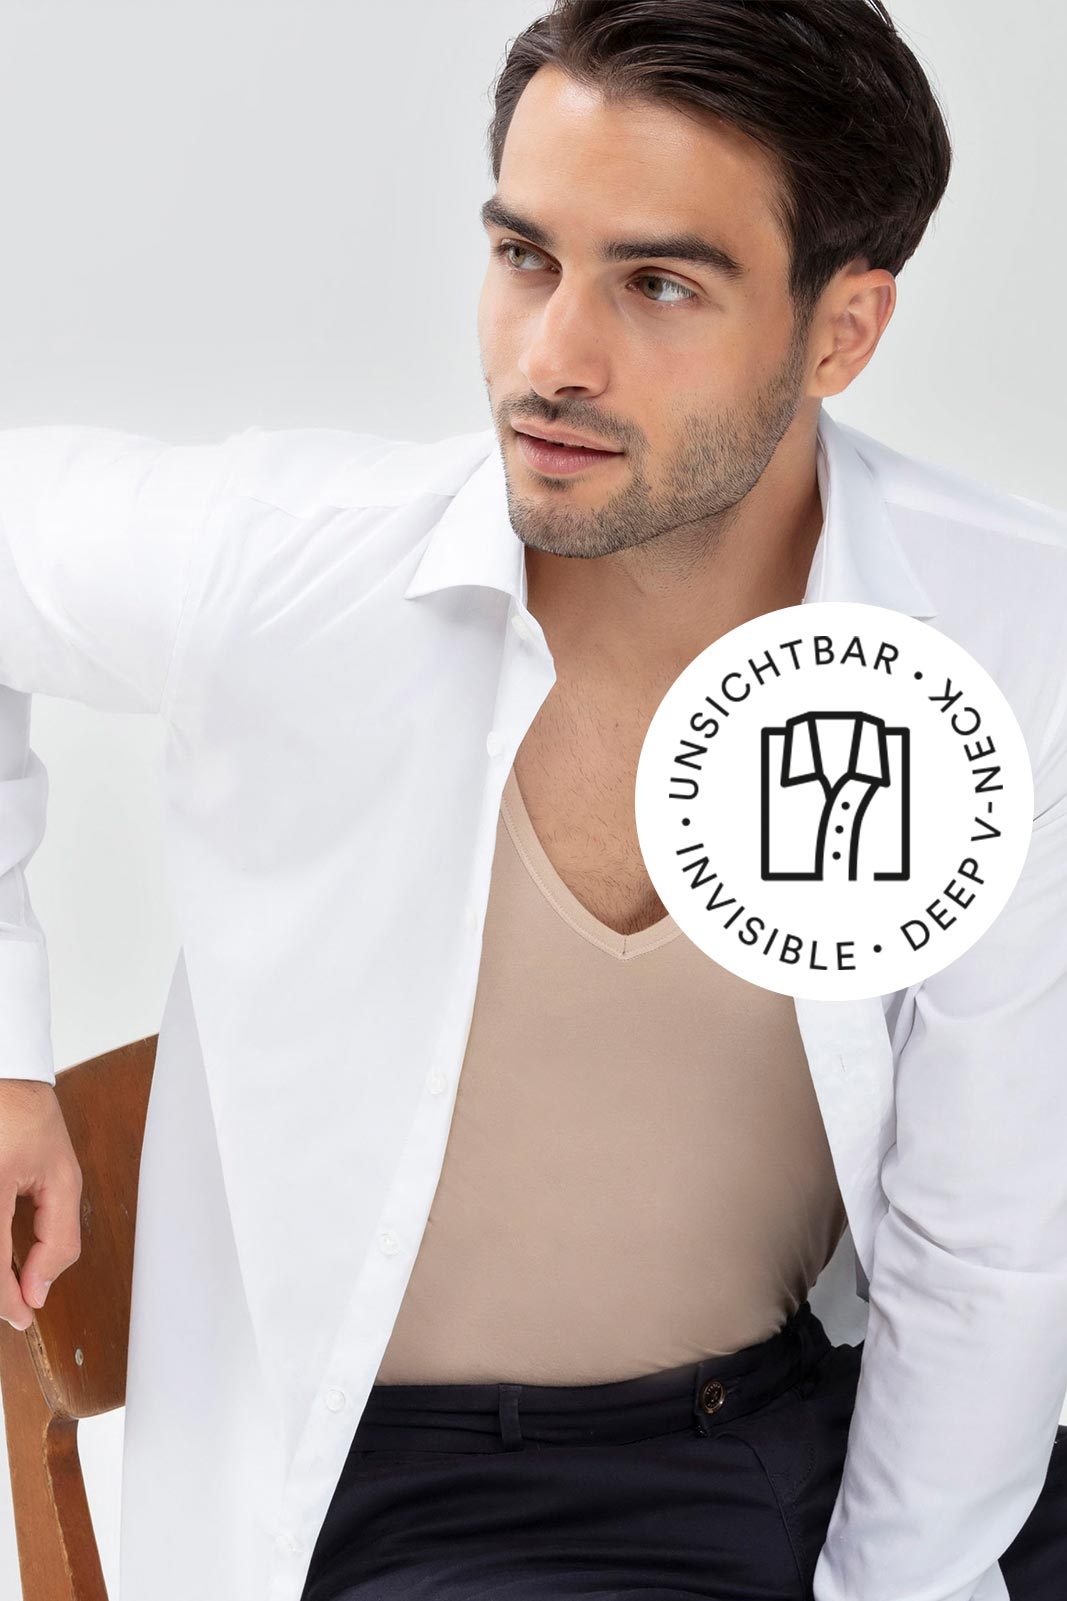 Mey® Serie Dry Cotton Functional, V-Neck Shirt in Light Skin am Model mit weißem, geöffneten Hemd darüber, Icon unsichtbares V-Neck Shirt